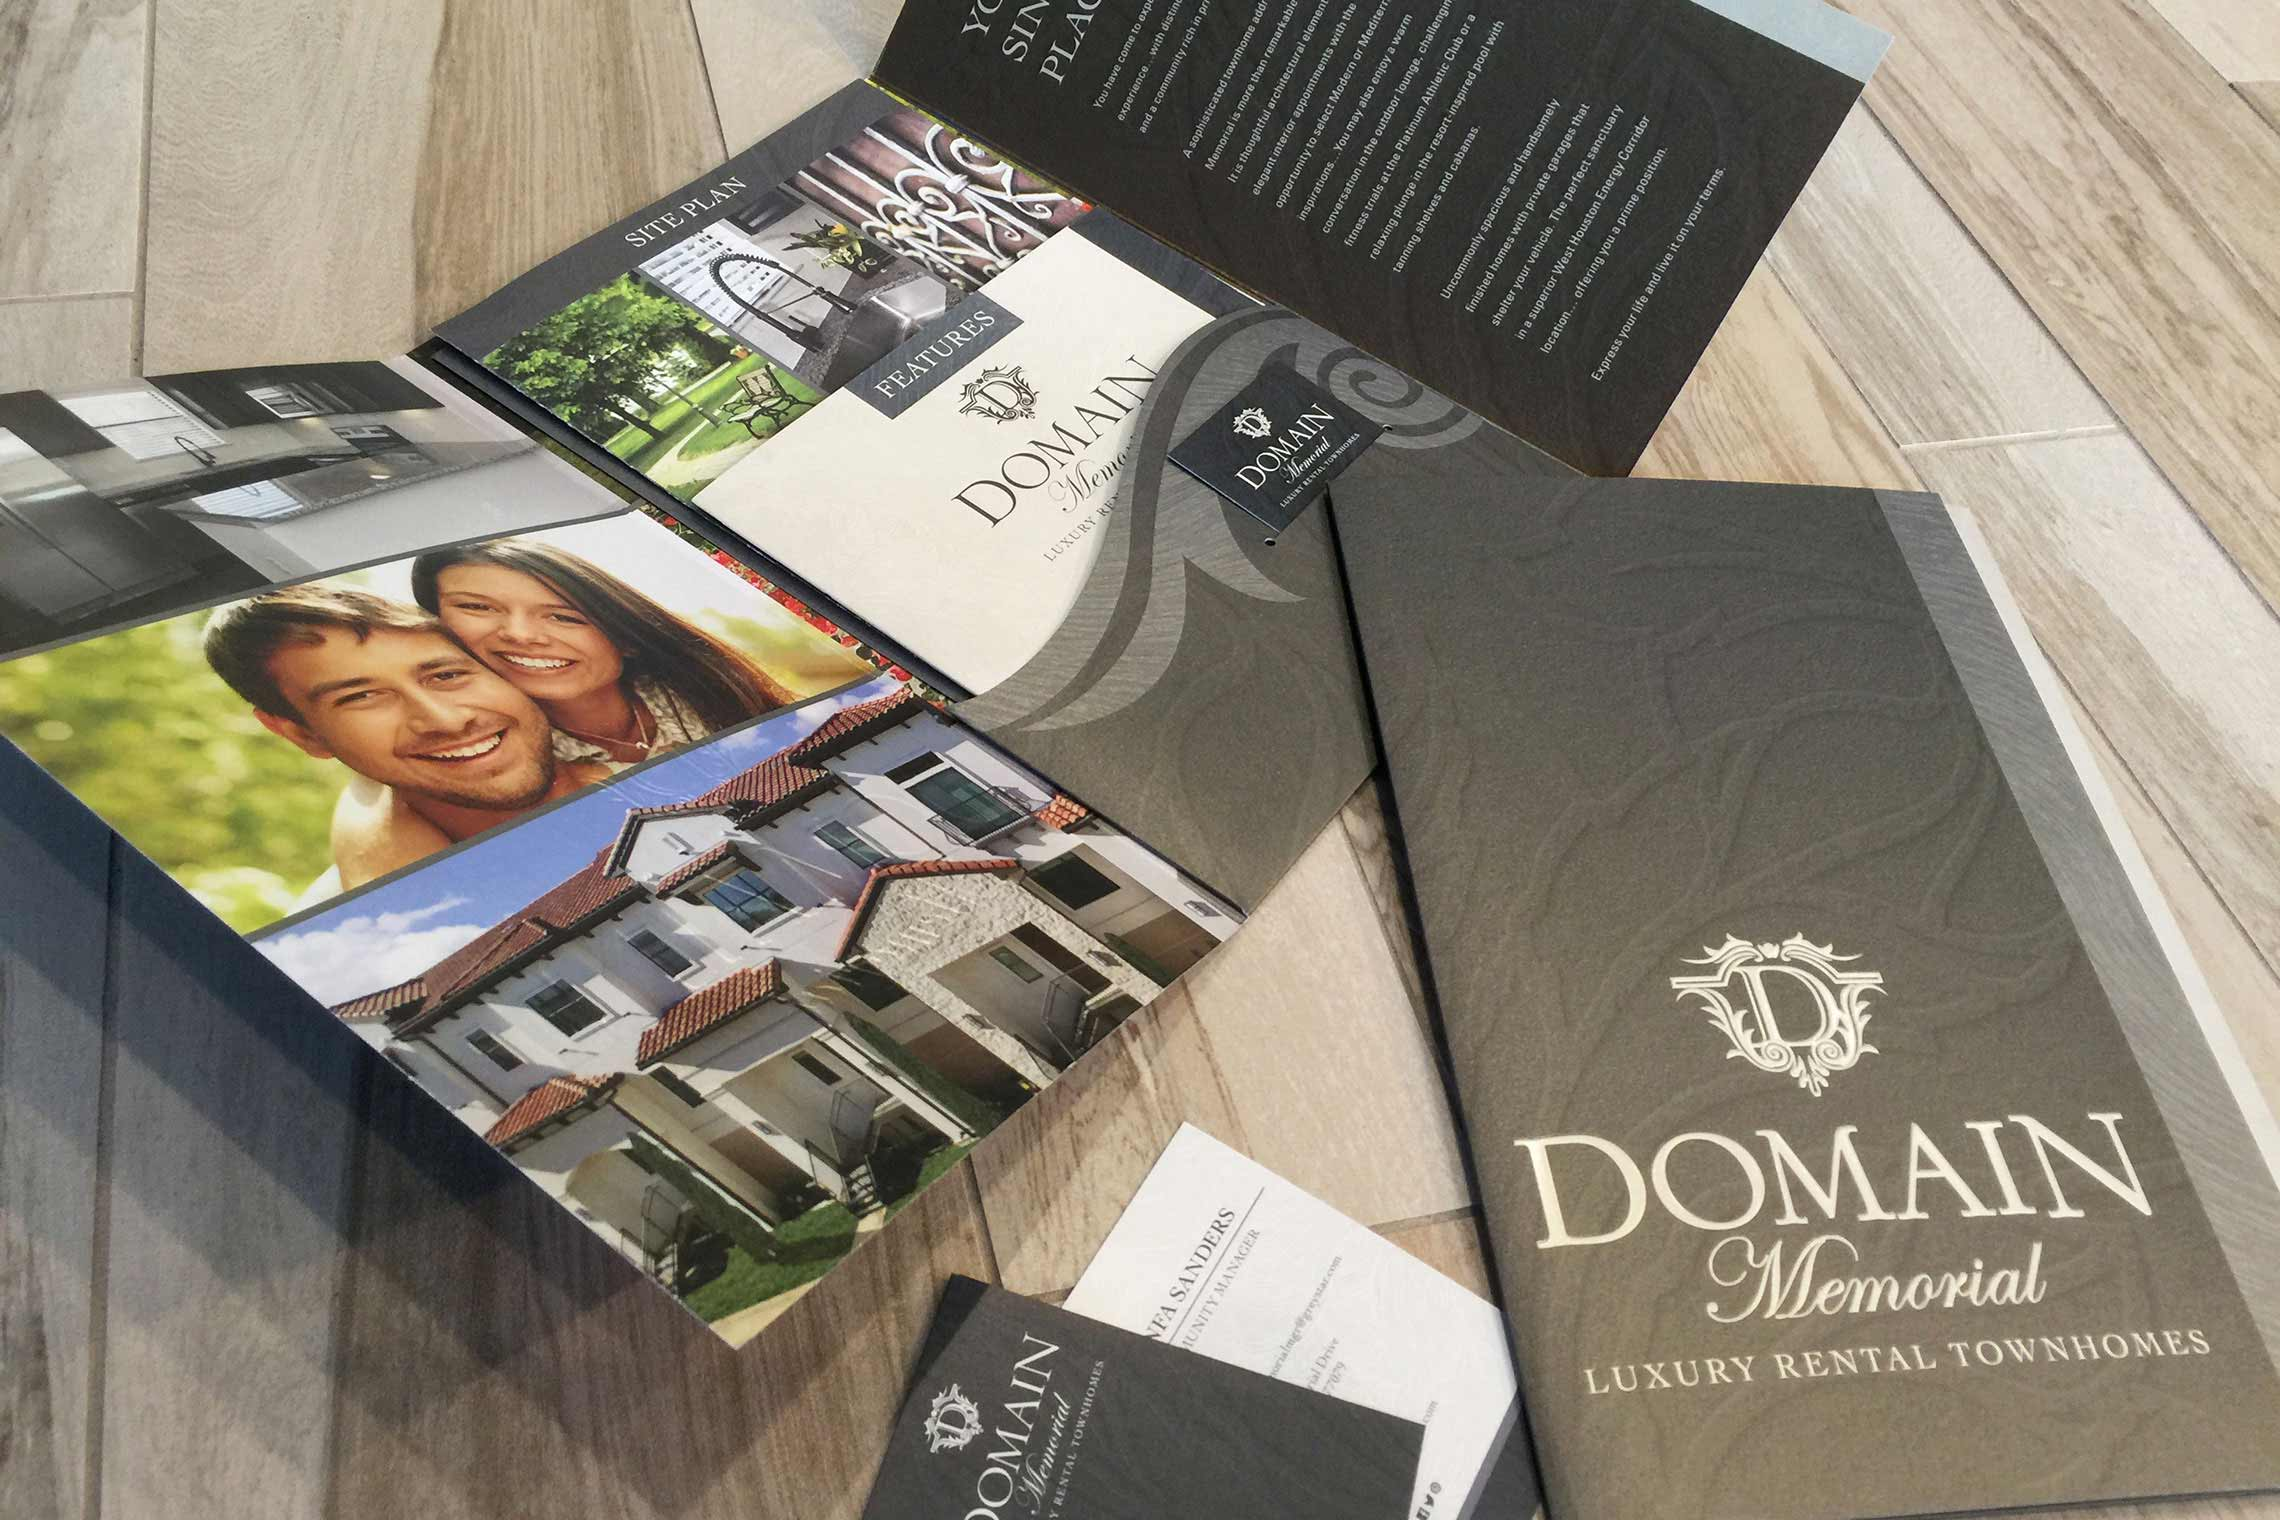 Domain Memorial Luxury Rental Townhomes - Pocket Folder Brochure with Floor Plan Inserts and Business Card